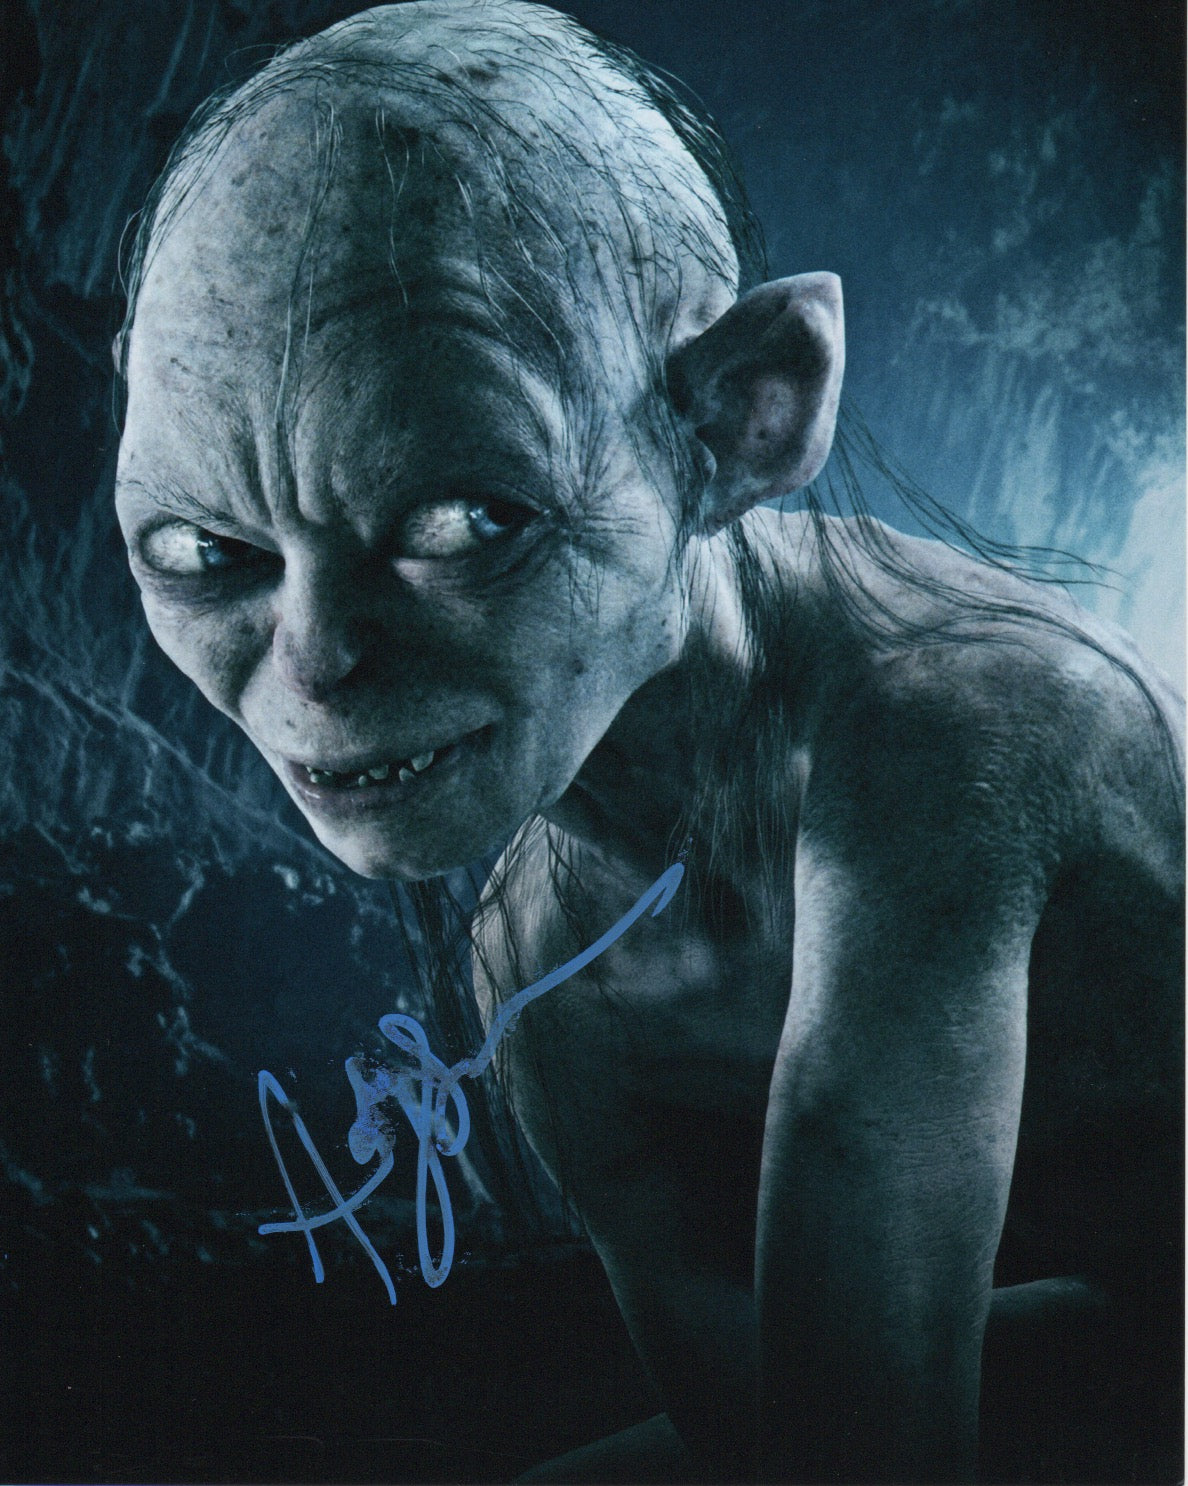 Andy Serkis Lord of the Rings Signed Autograph 8x10 Photo